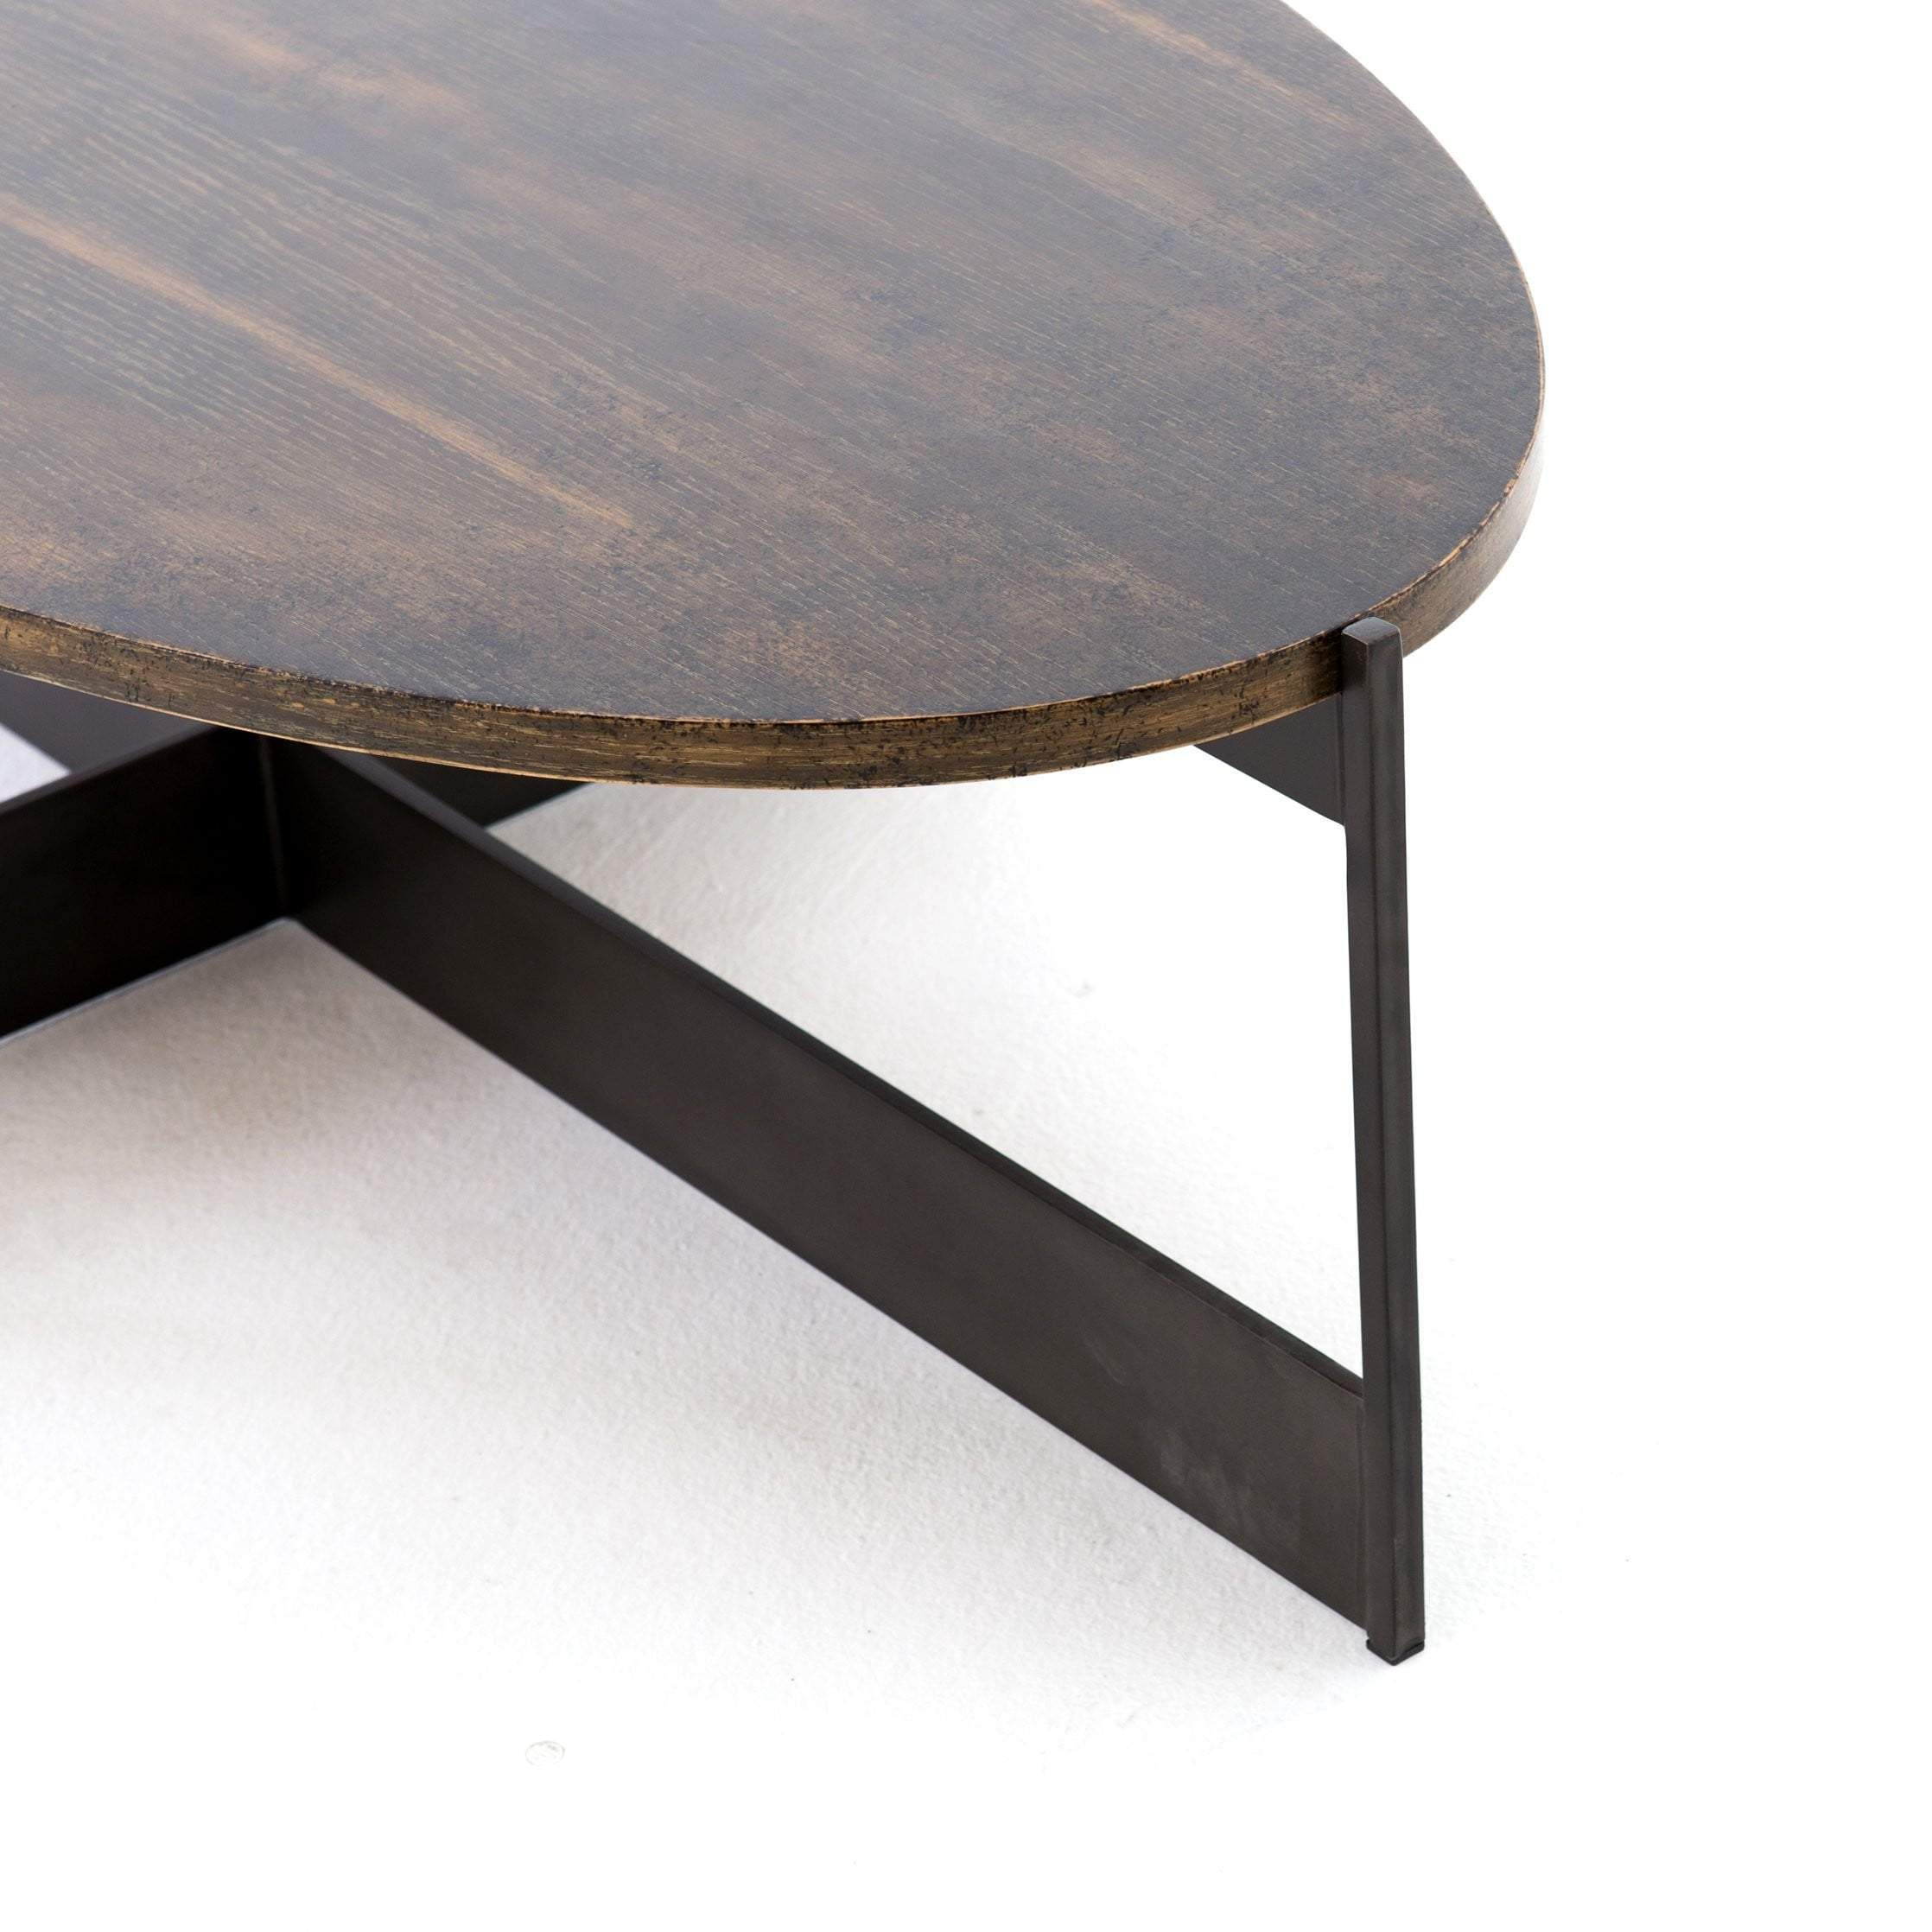 Shannon 55 In 2021 Oval Coffee Tables Coffee Table Home Coffee Tables [ 2236 x 2236 Pixel ]